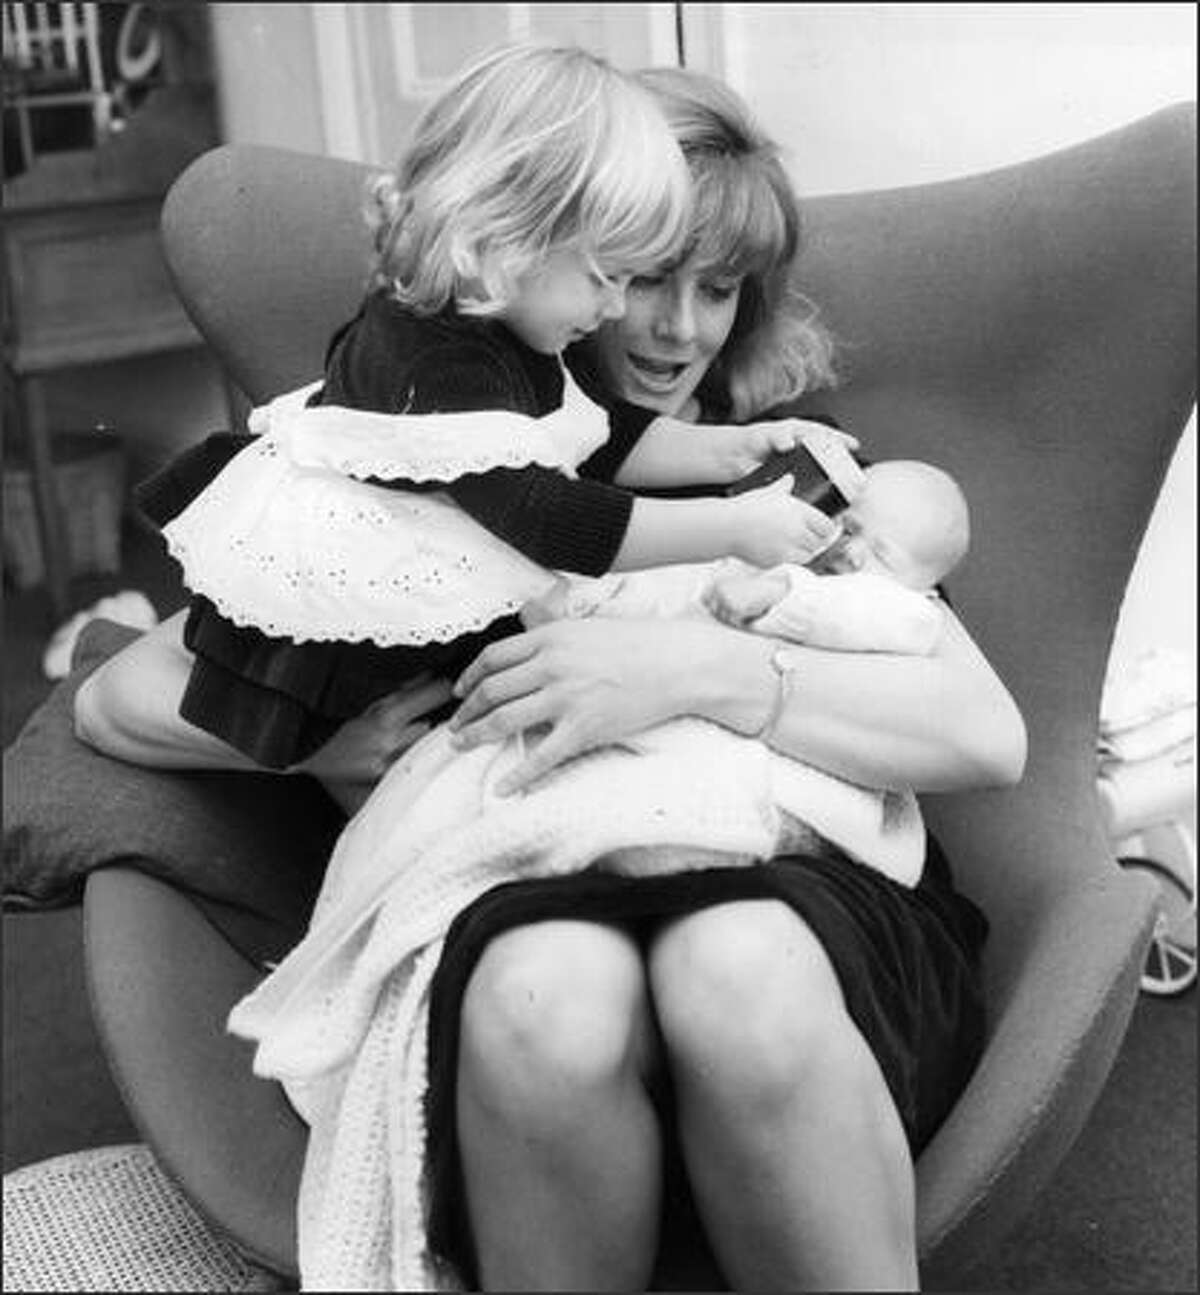 Jan. 19, 1965: English actress Vanessa Redgrave with her two daughters, 20-month old Natasha Jane and new-born Joely Kim Richardson. She is married to film director, Tony Richardson.